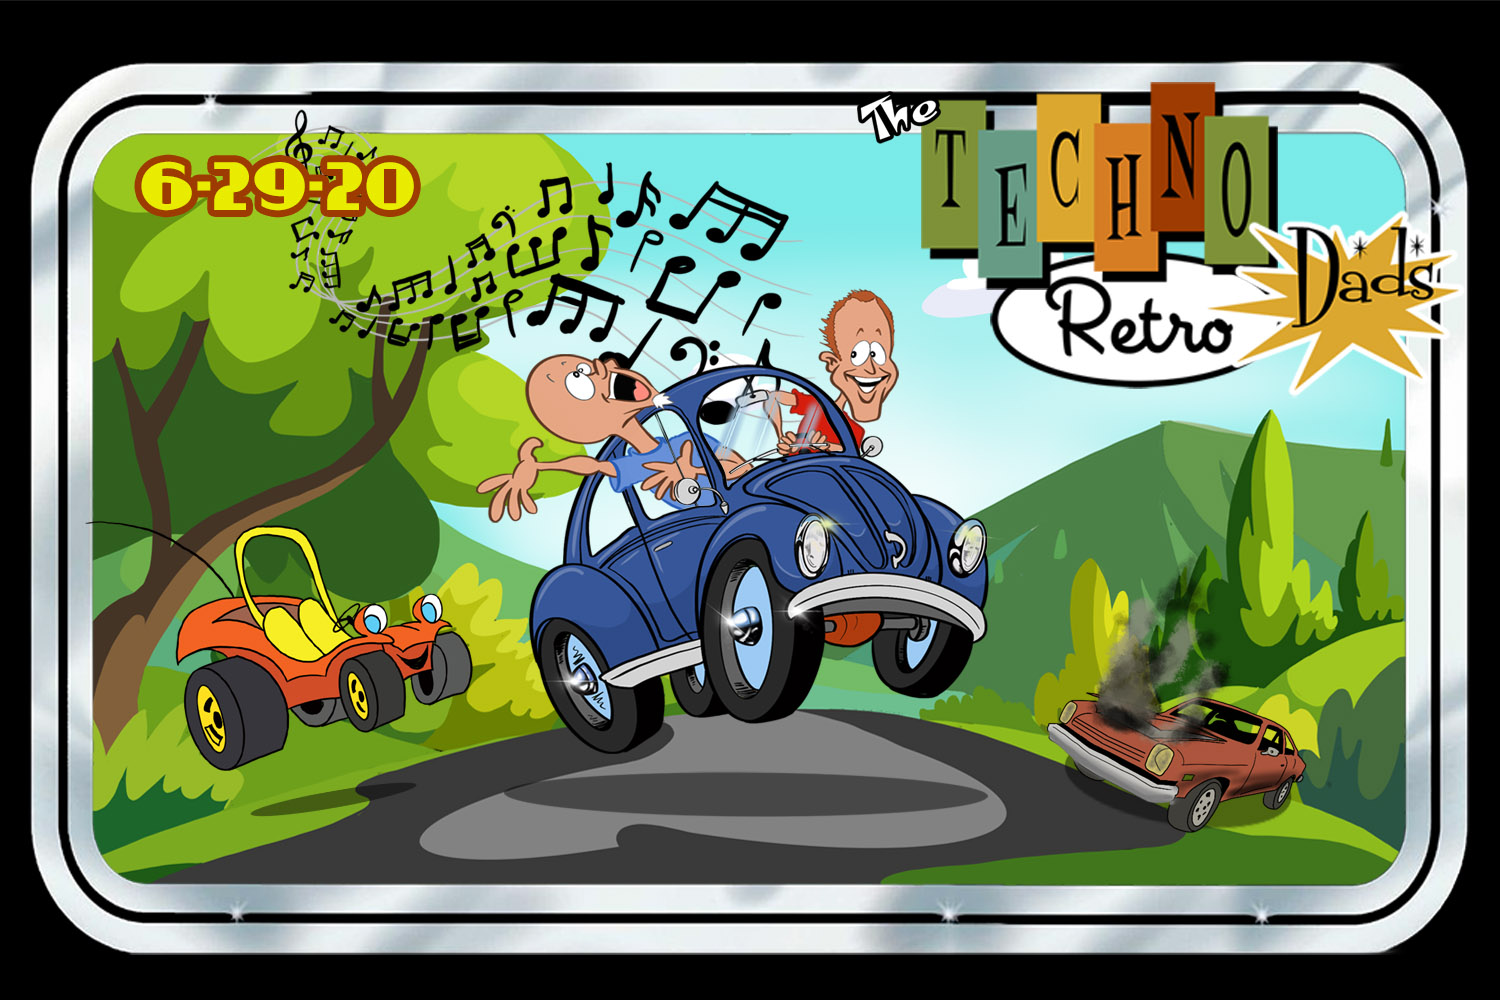 TechnoRetro Dads - Riding in our First Speed Buggies, crankin' the FM